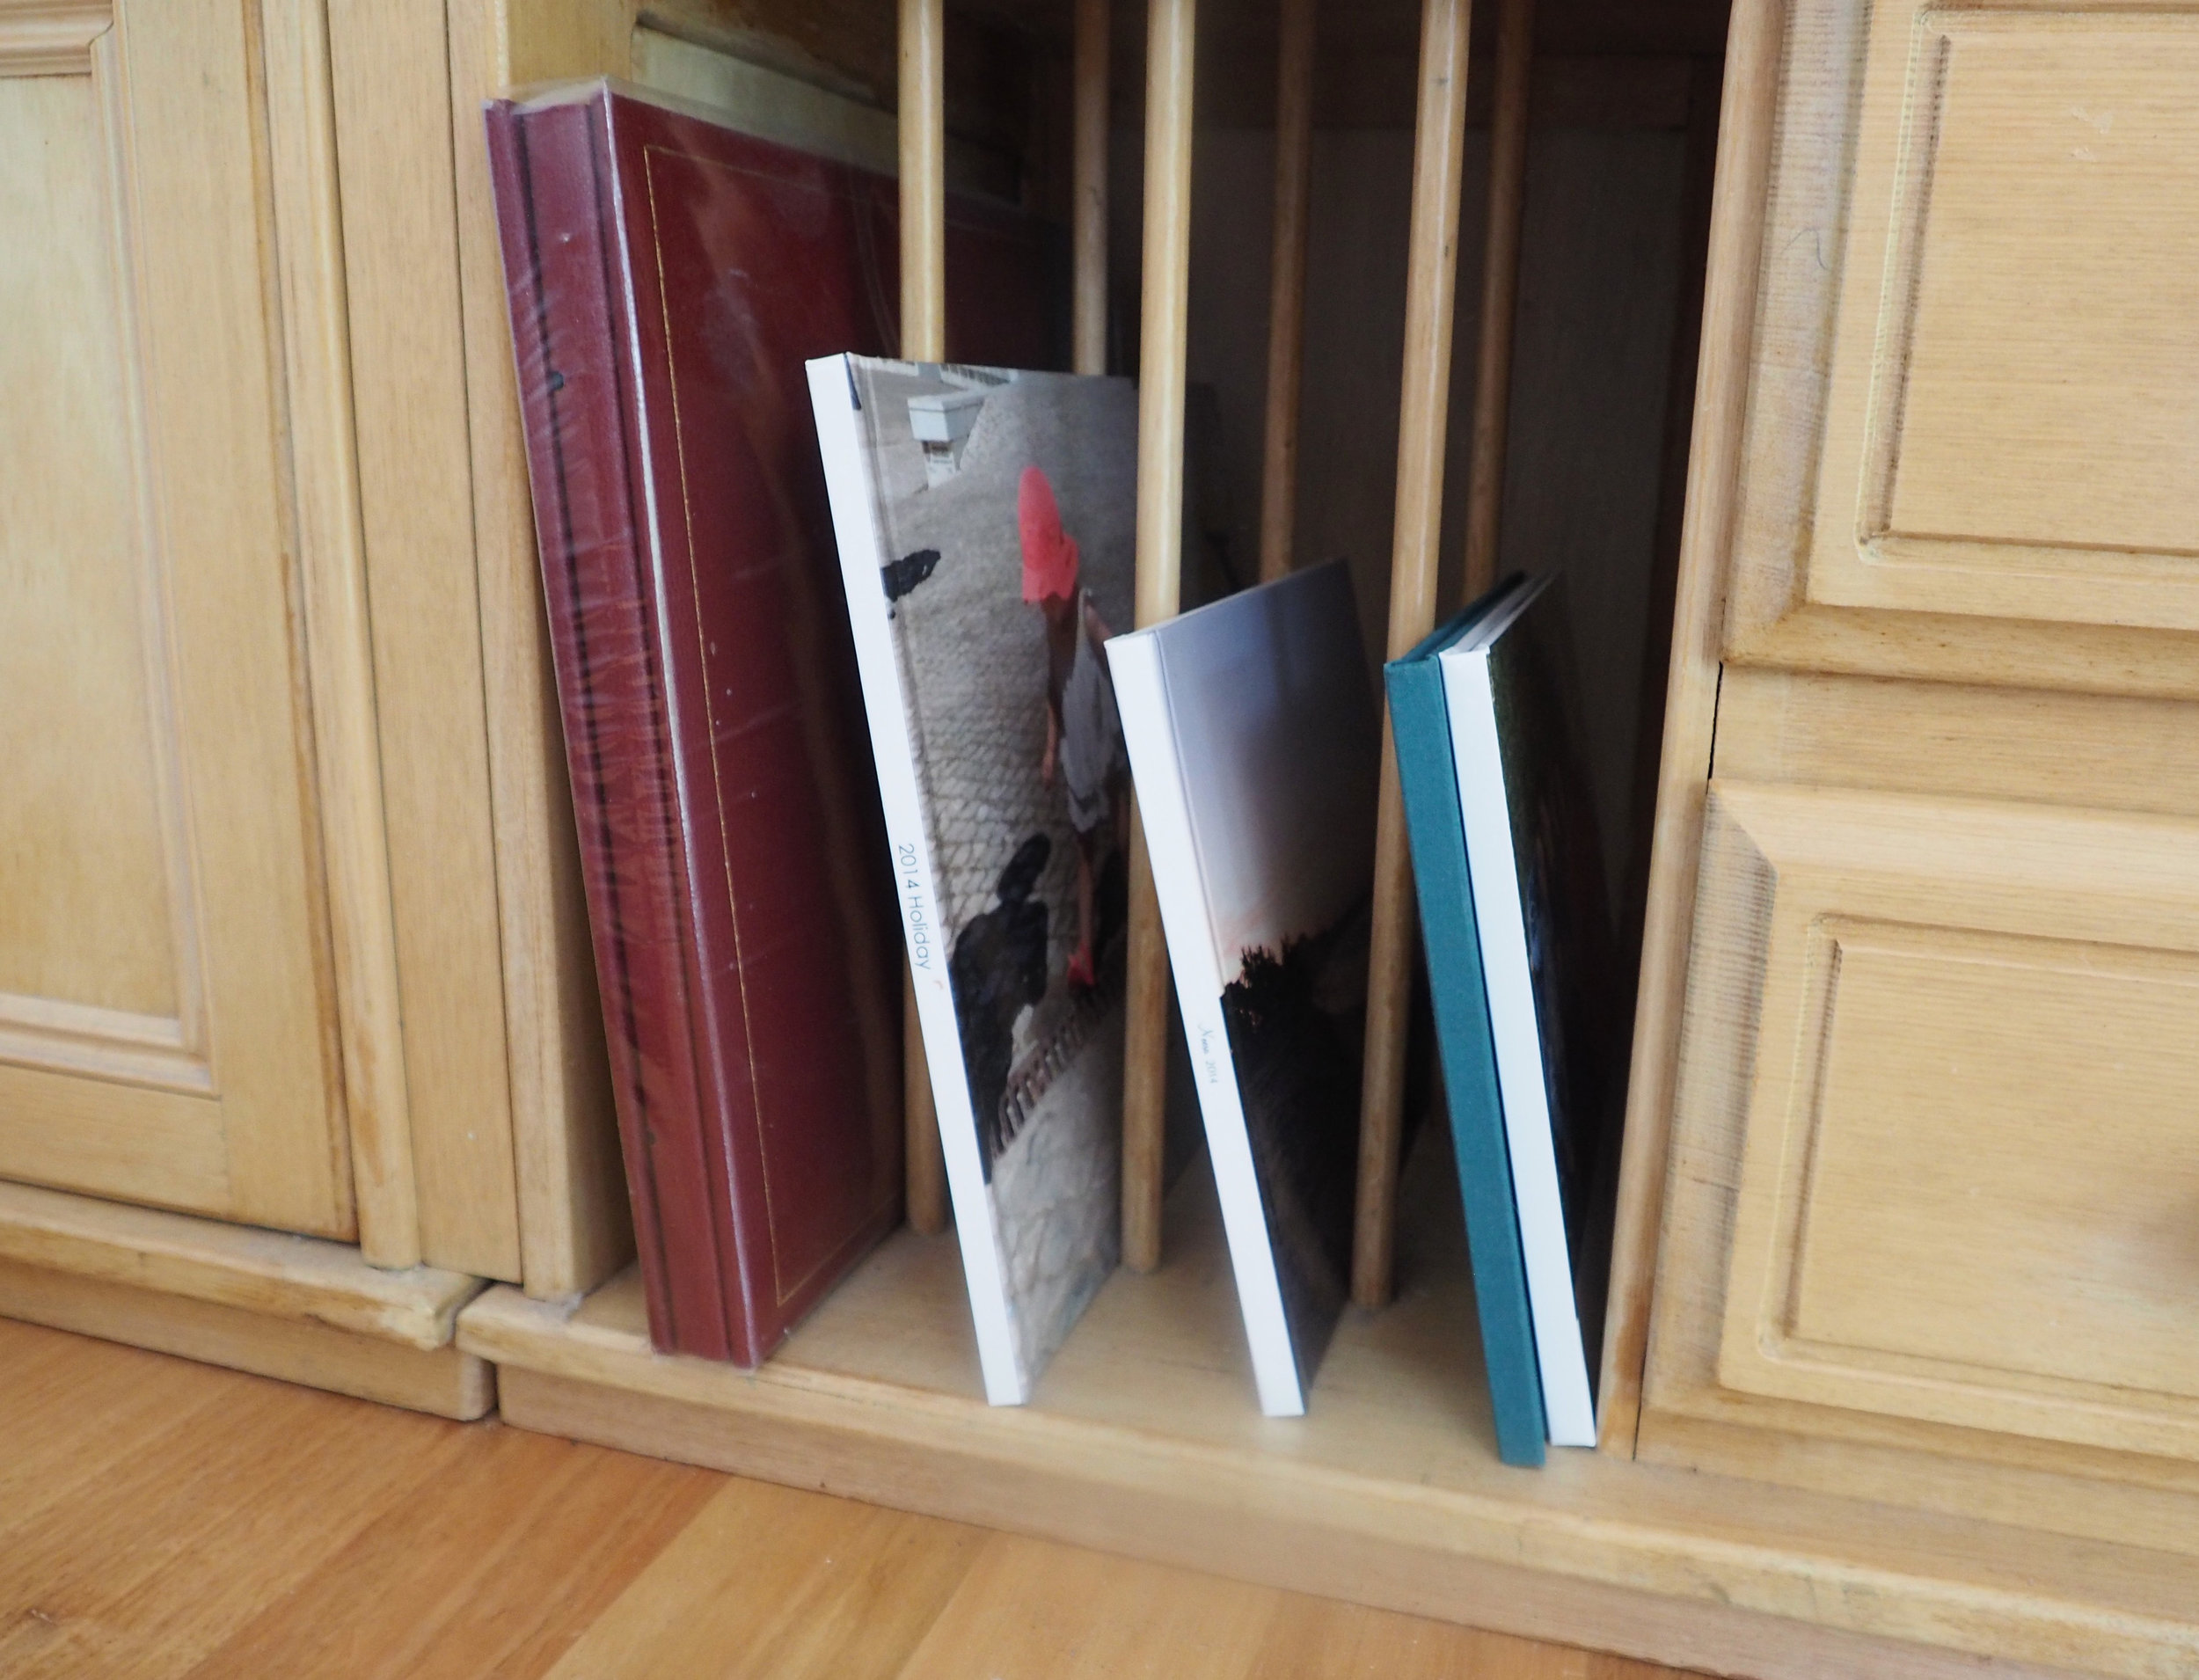 Hide warranties and manuals in a lidded basket near the TV unit - The Organised You